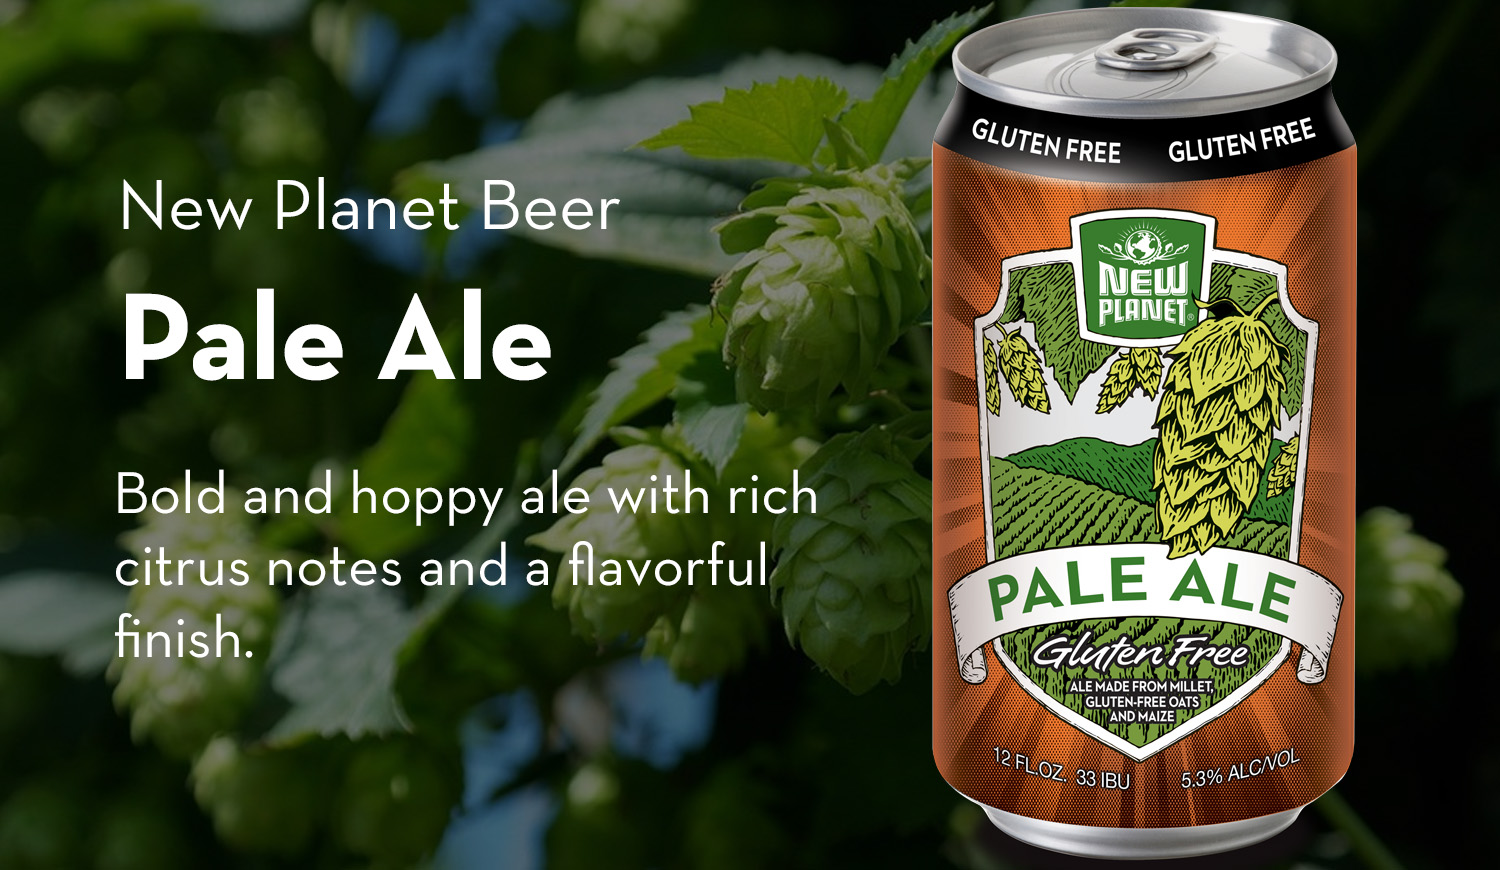 New Planet Beer | Gluten Free and Gluten Reduced Beer from ...